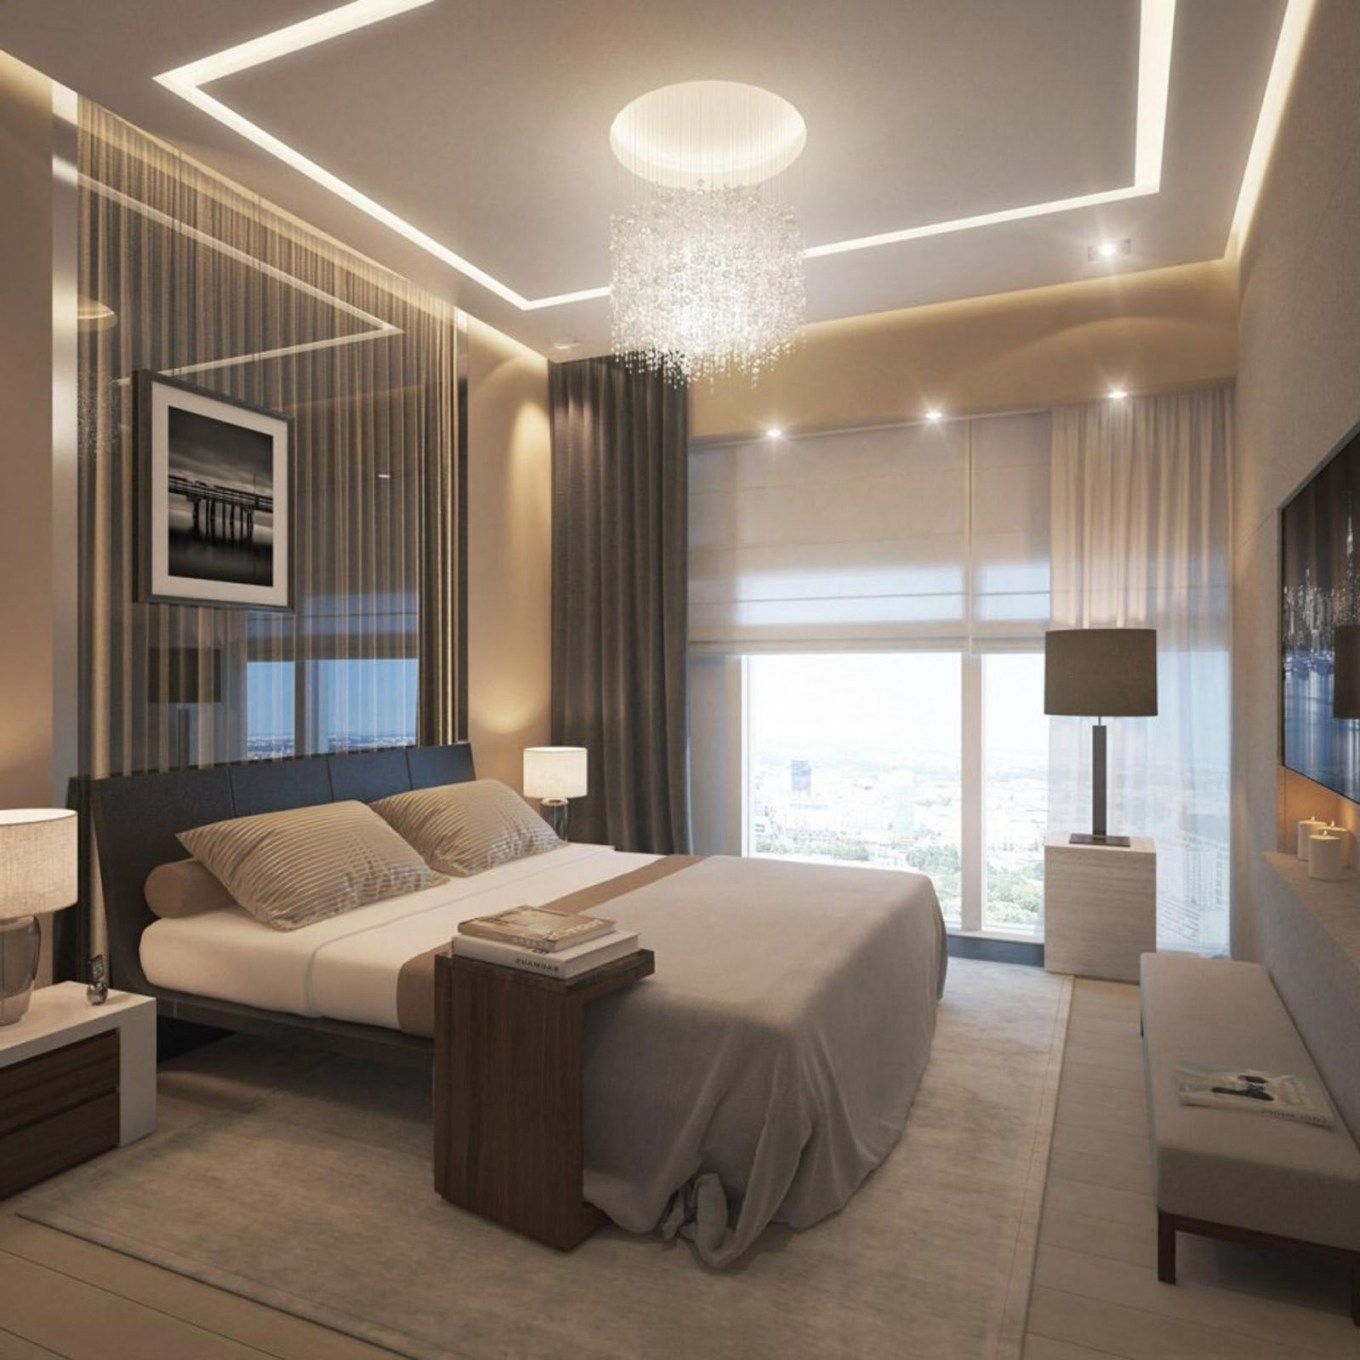 Top 10 Small Bedroom Ceiling Lighting Ideas Top 10 Small Bedroom